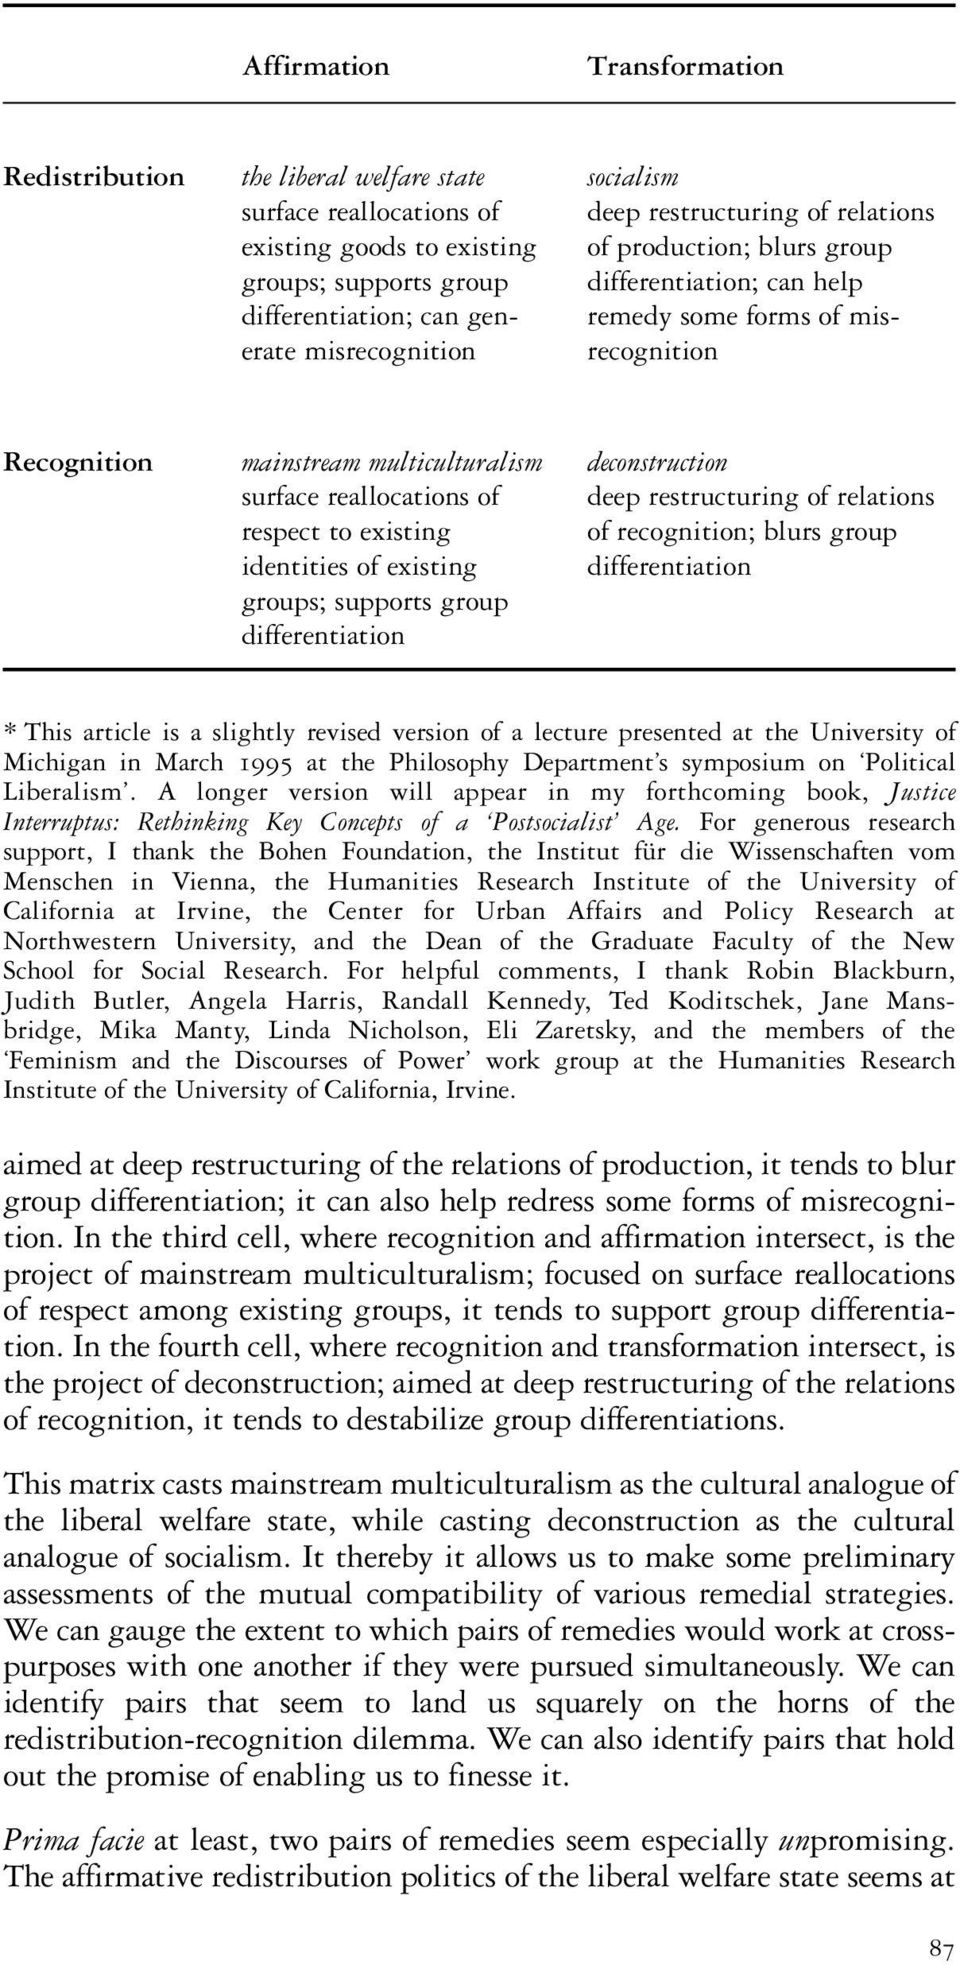 reallocations of deep restructuring of relations respect to existing of recognition; blurs group identities of existing differentiation groups; supports group differentiation * This article is a